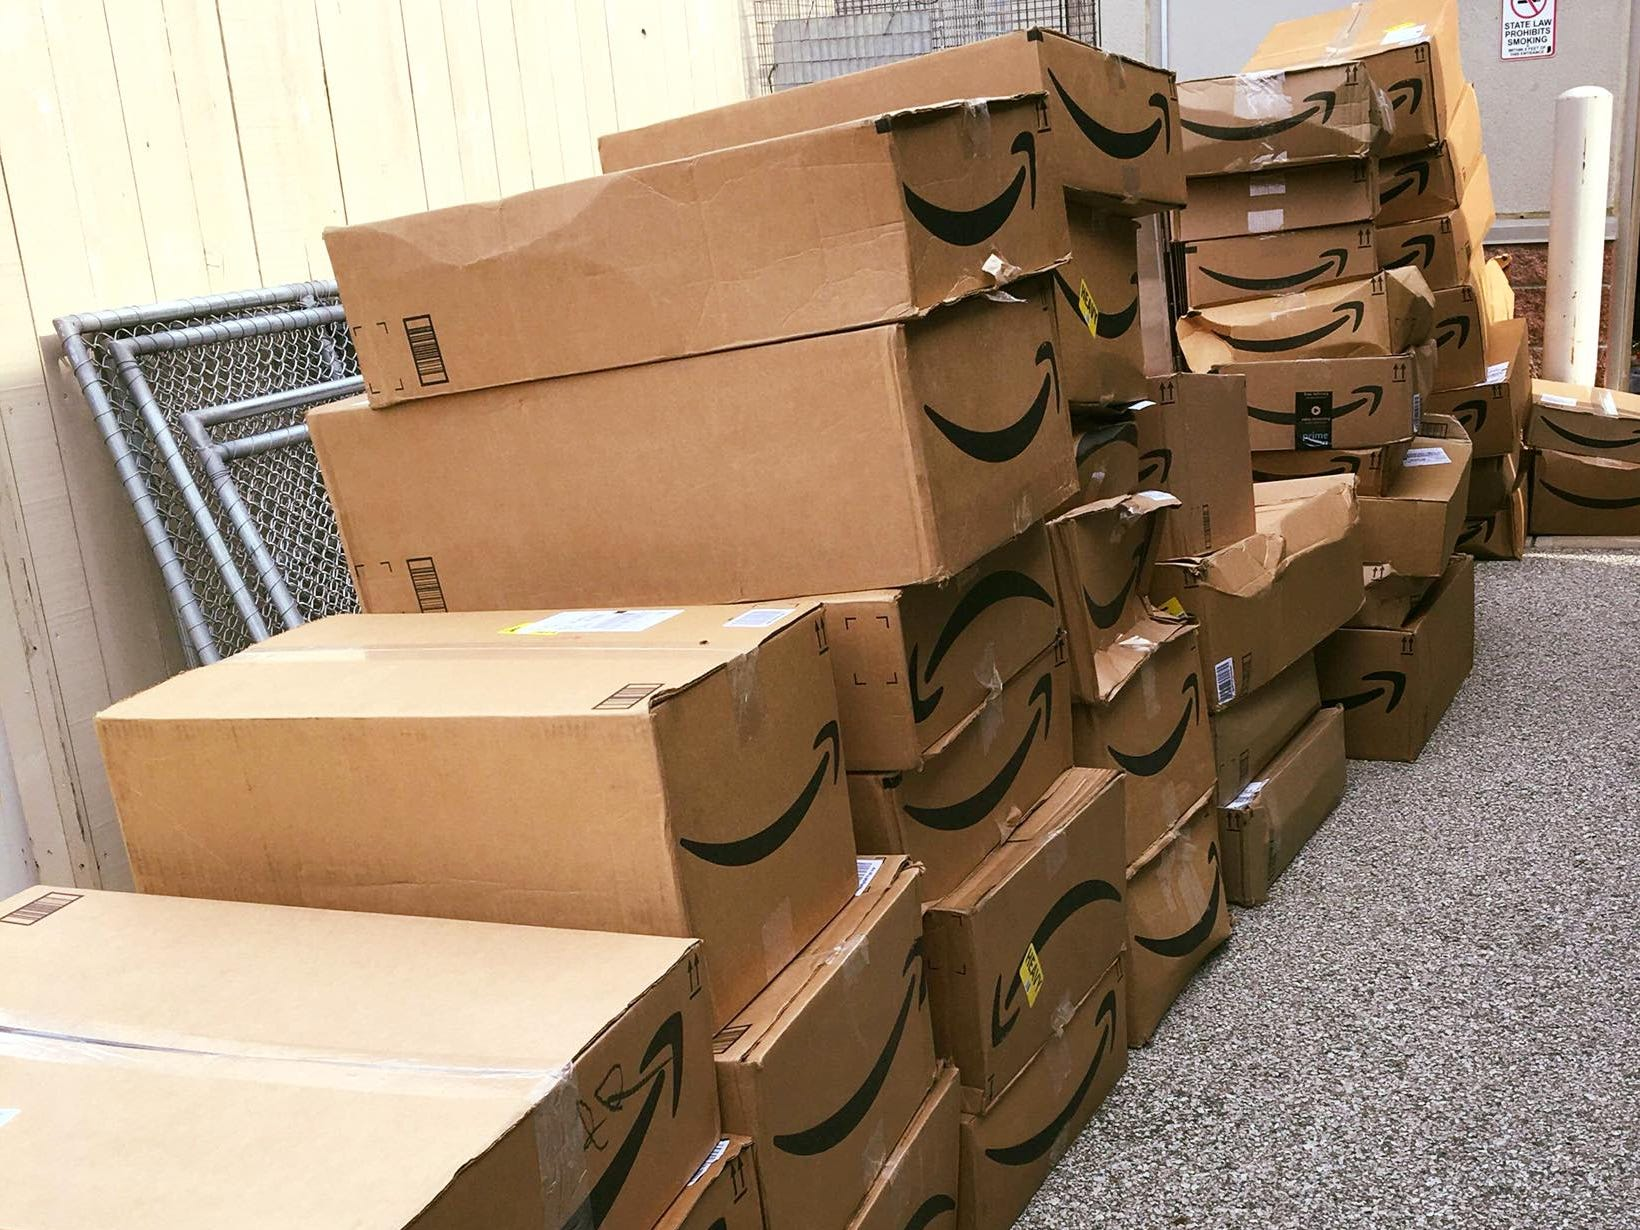 These Amazon packages accounted for some of the 177 boxes of donations delivered to the Hendricks County Animal Shelter by UPS and FedEx on Friday, Aug. 10.